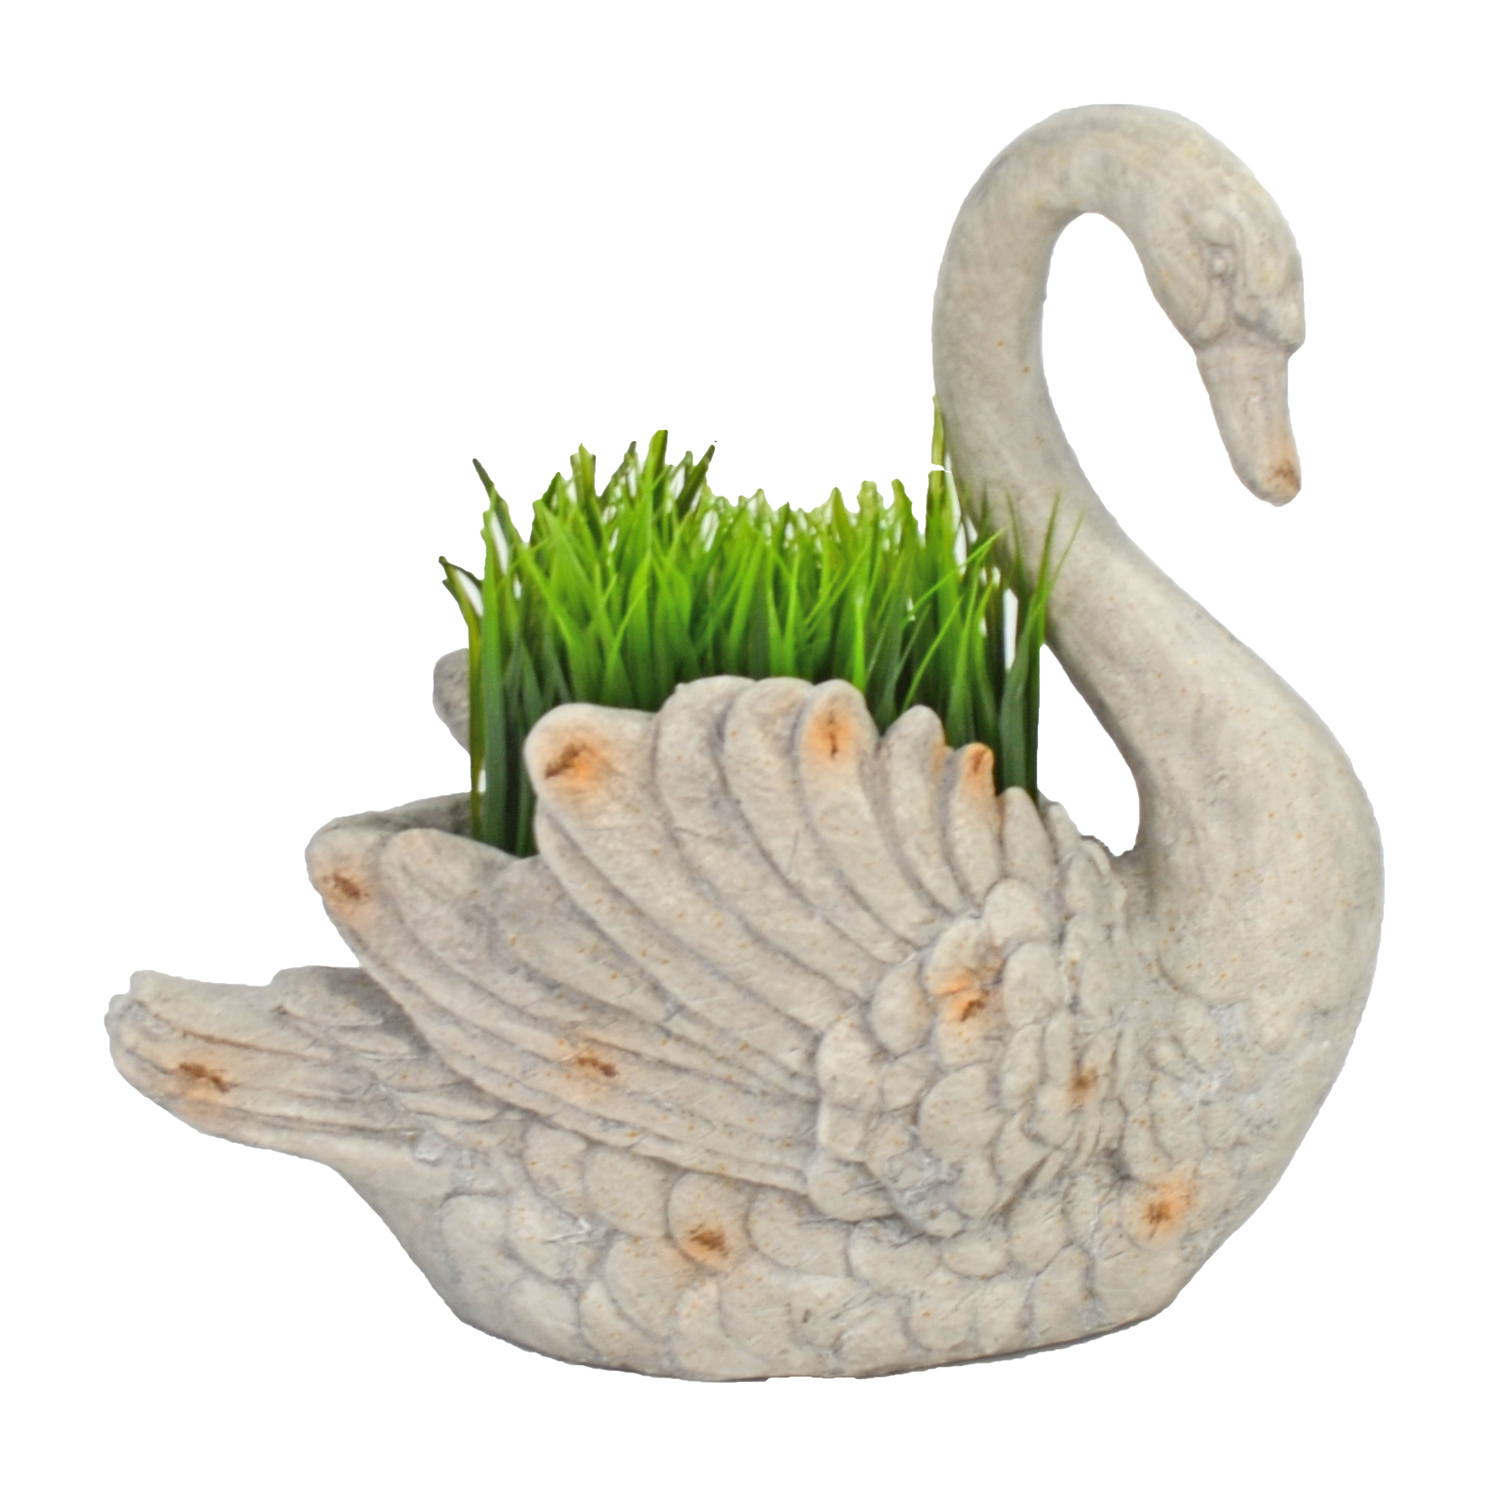 SWAN PLANTER 41CM WEATHERED STONE EFFECT PROFILE WS12 1